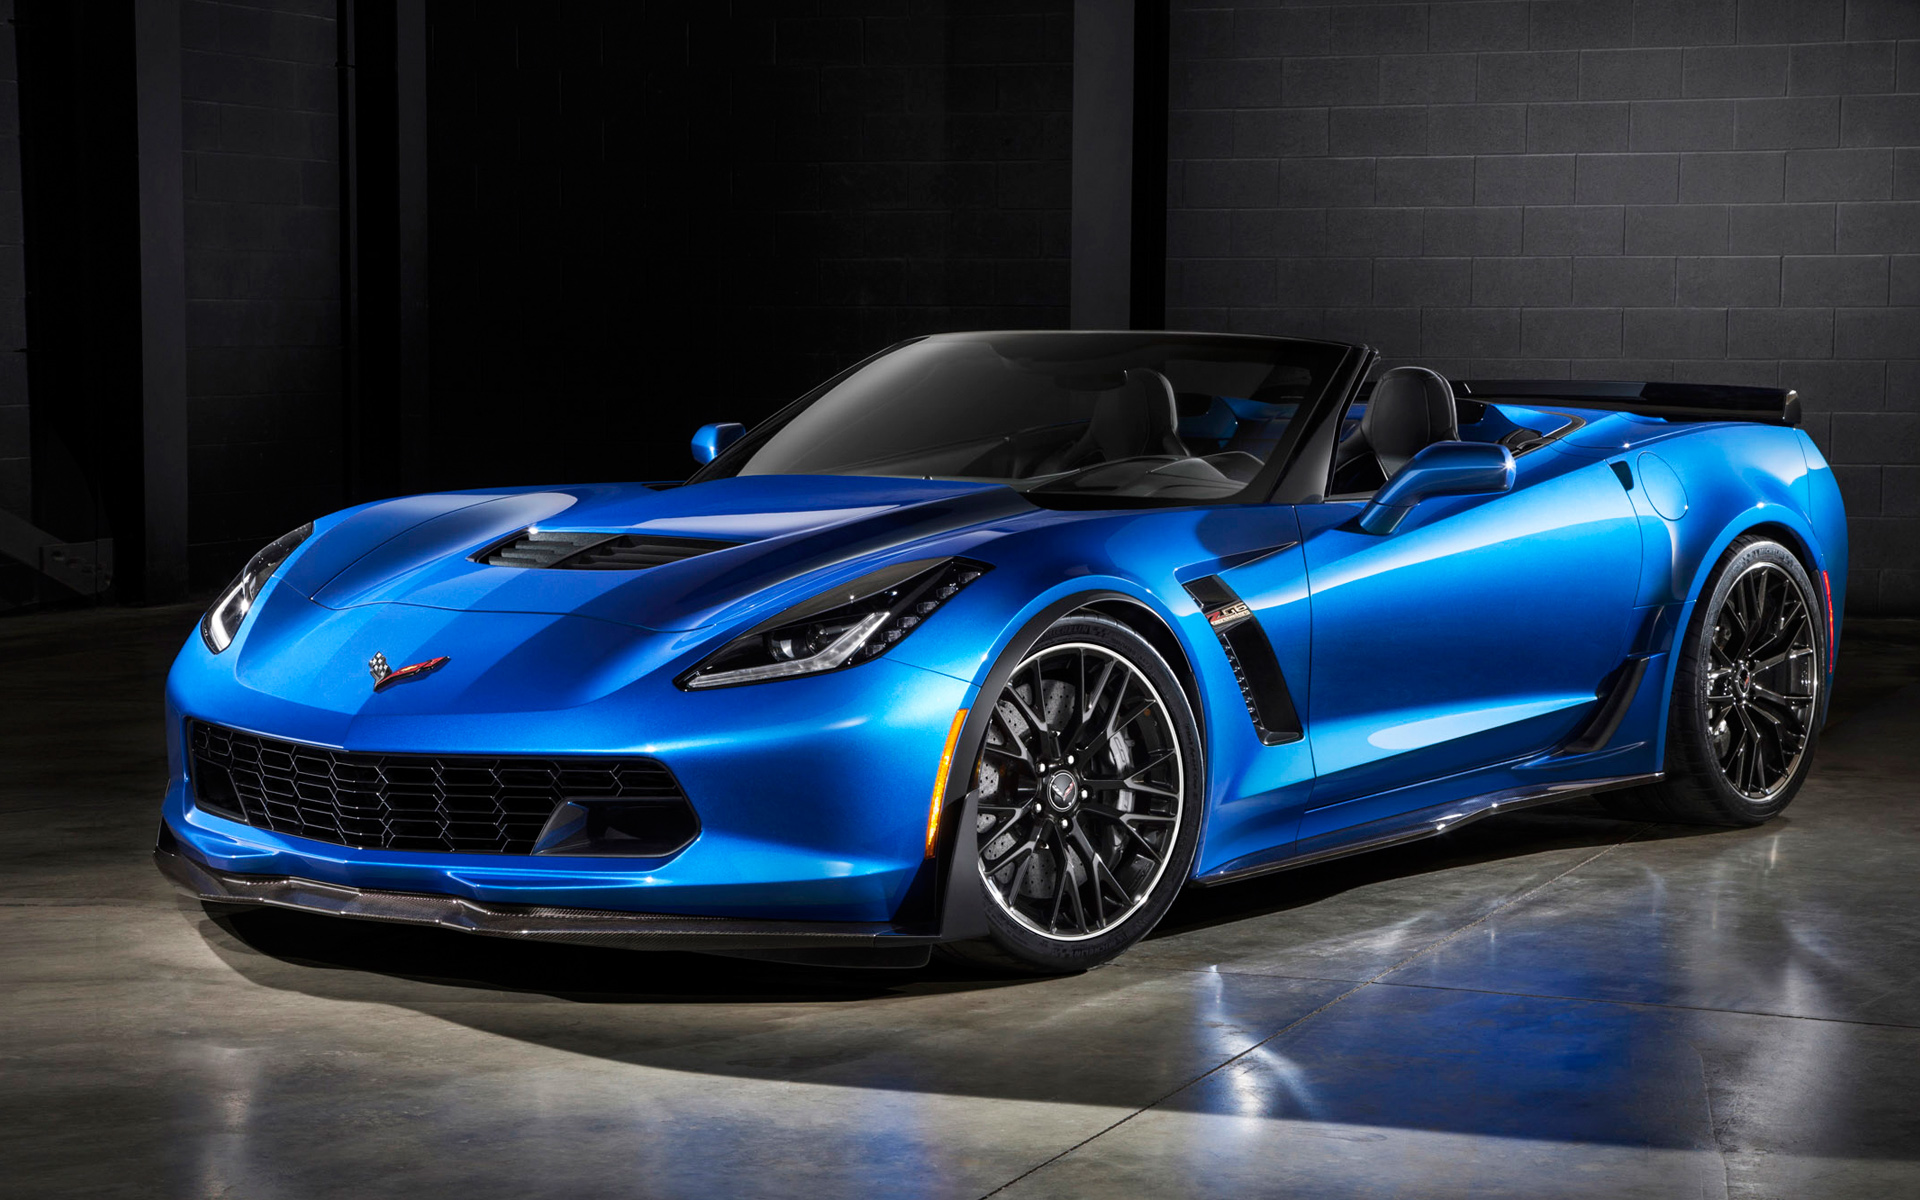 2015 Chevrolet Corvette Z06 Convertible Wallpaper HD Car Wallpapers 1920x1200